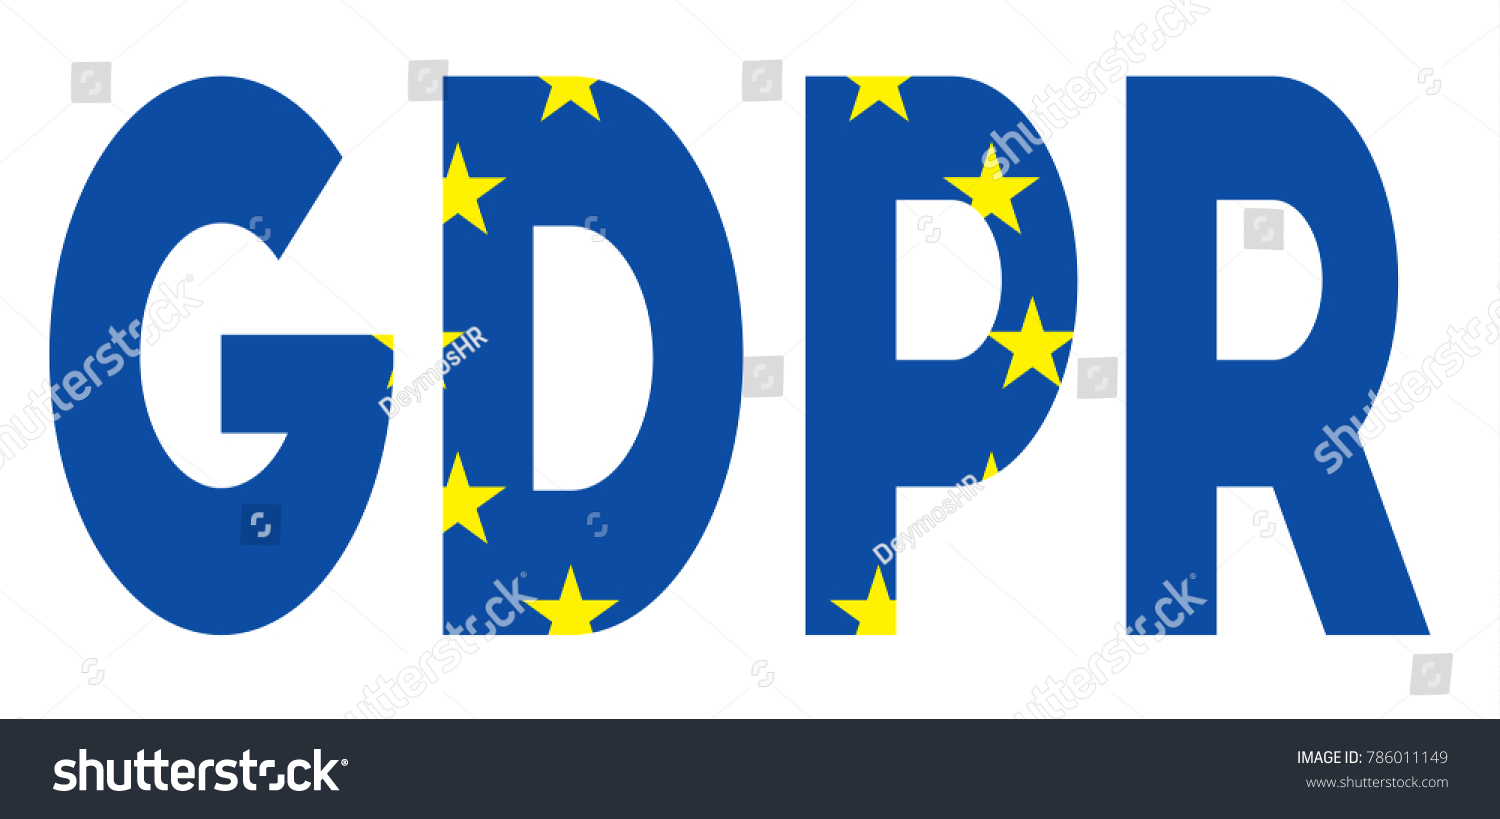 Word Gdpr With Elements Of The European Union Flag Il Rating Eu Law On